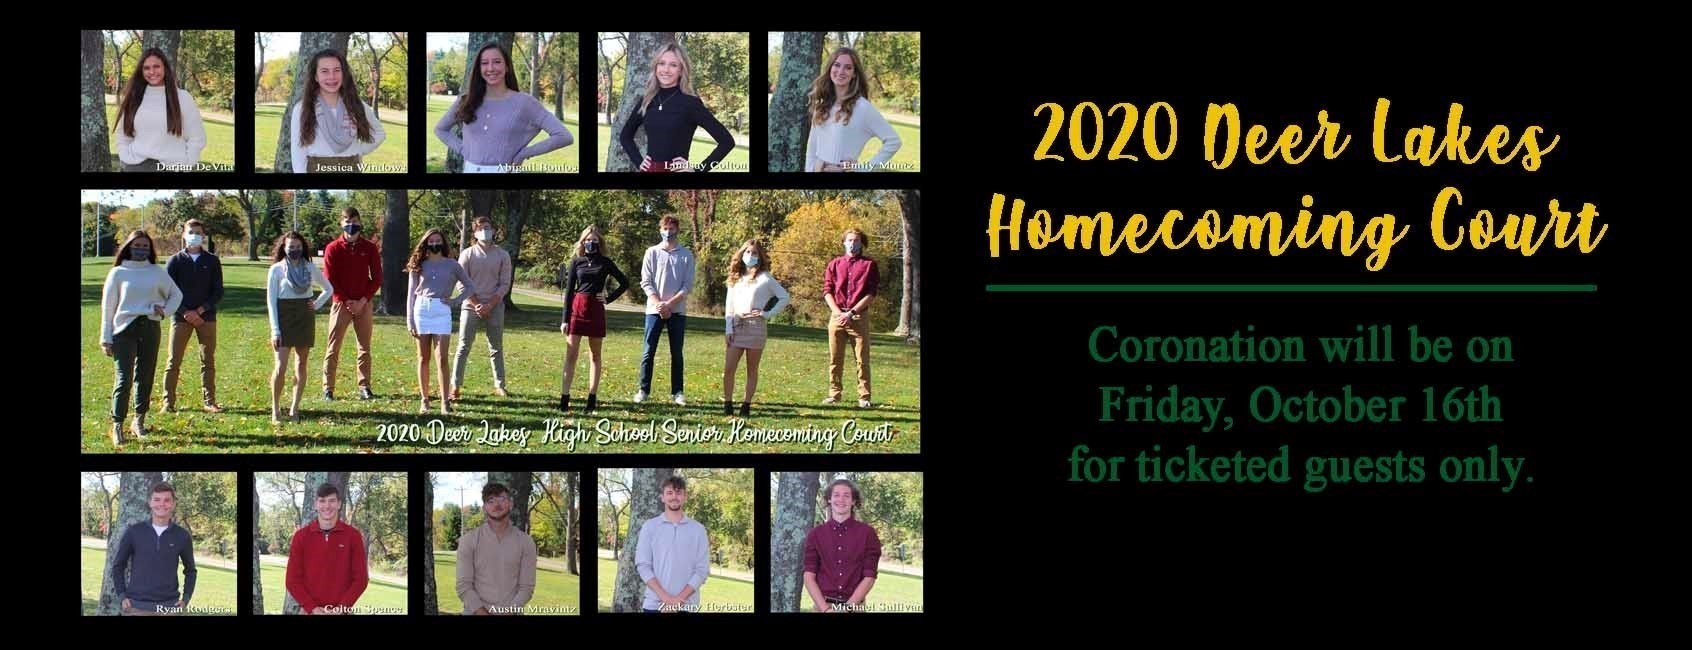 Homecoming Court 2020